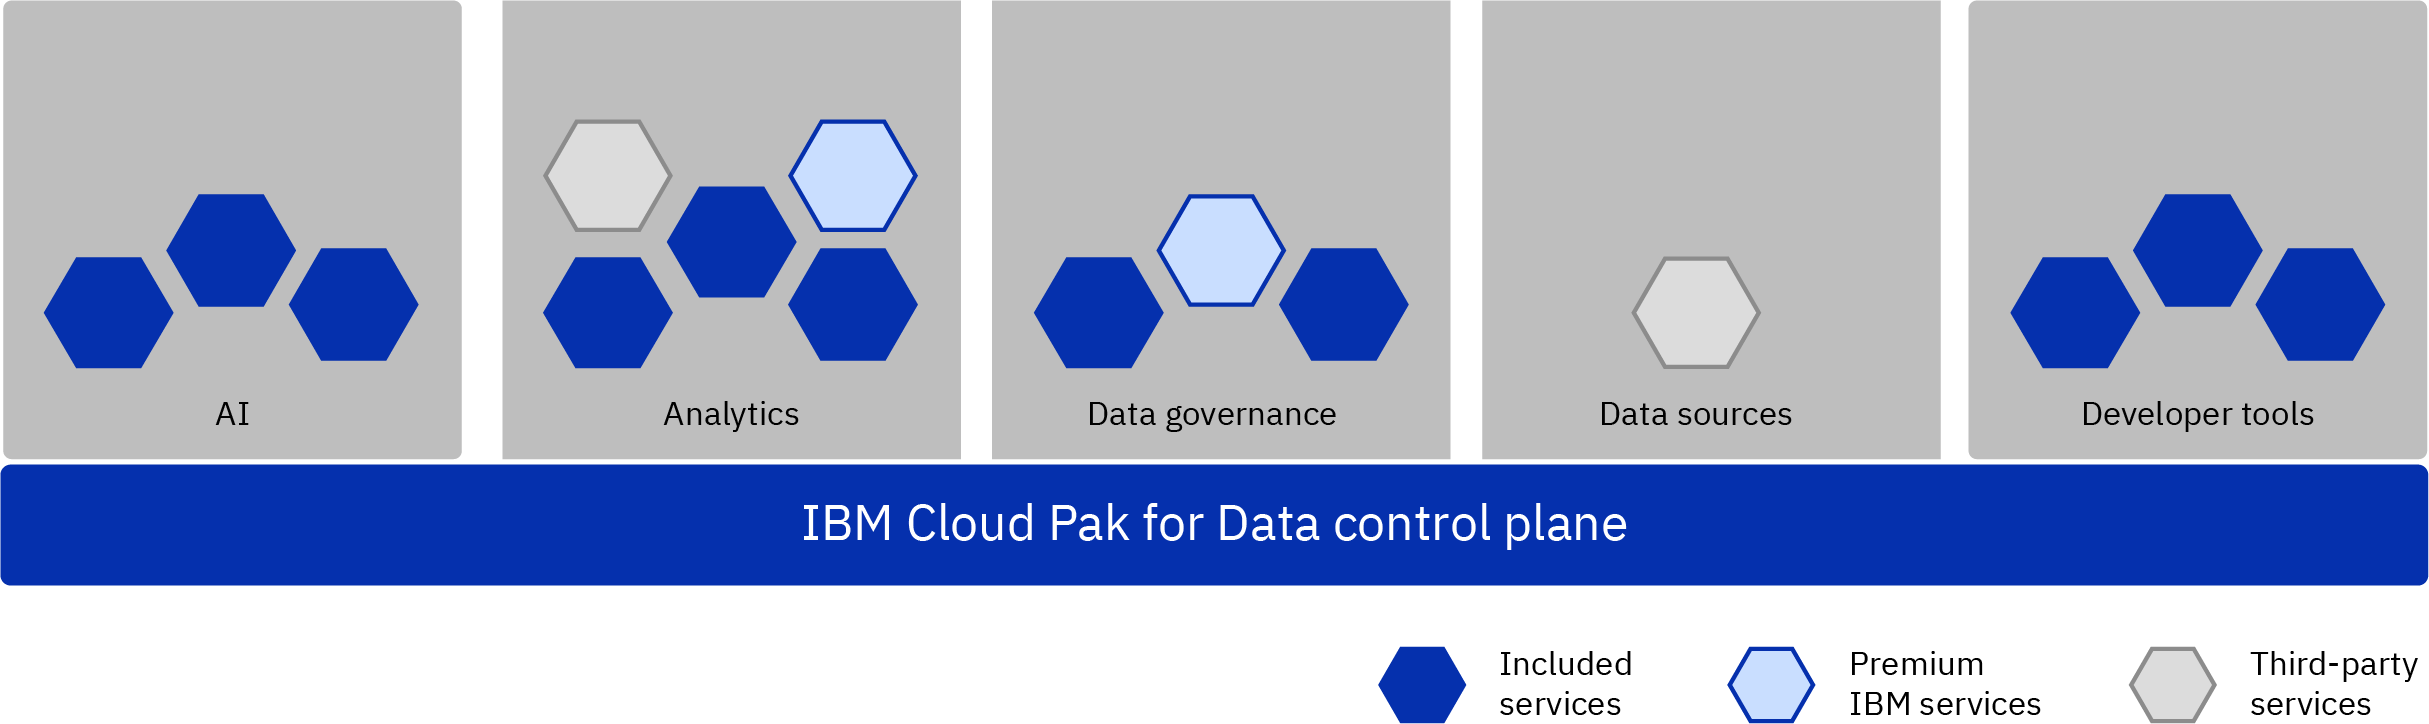 Illustration showing several types of services installed on the Cloud Pak for Data control plane